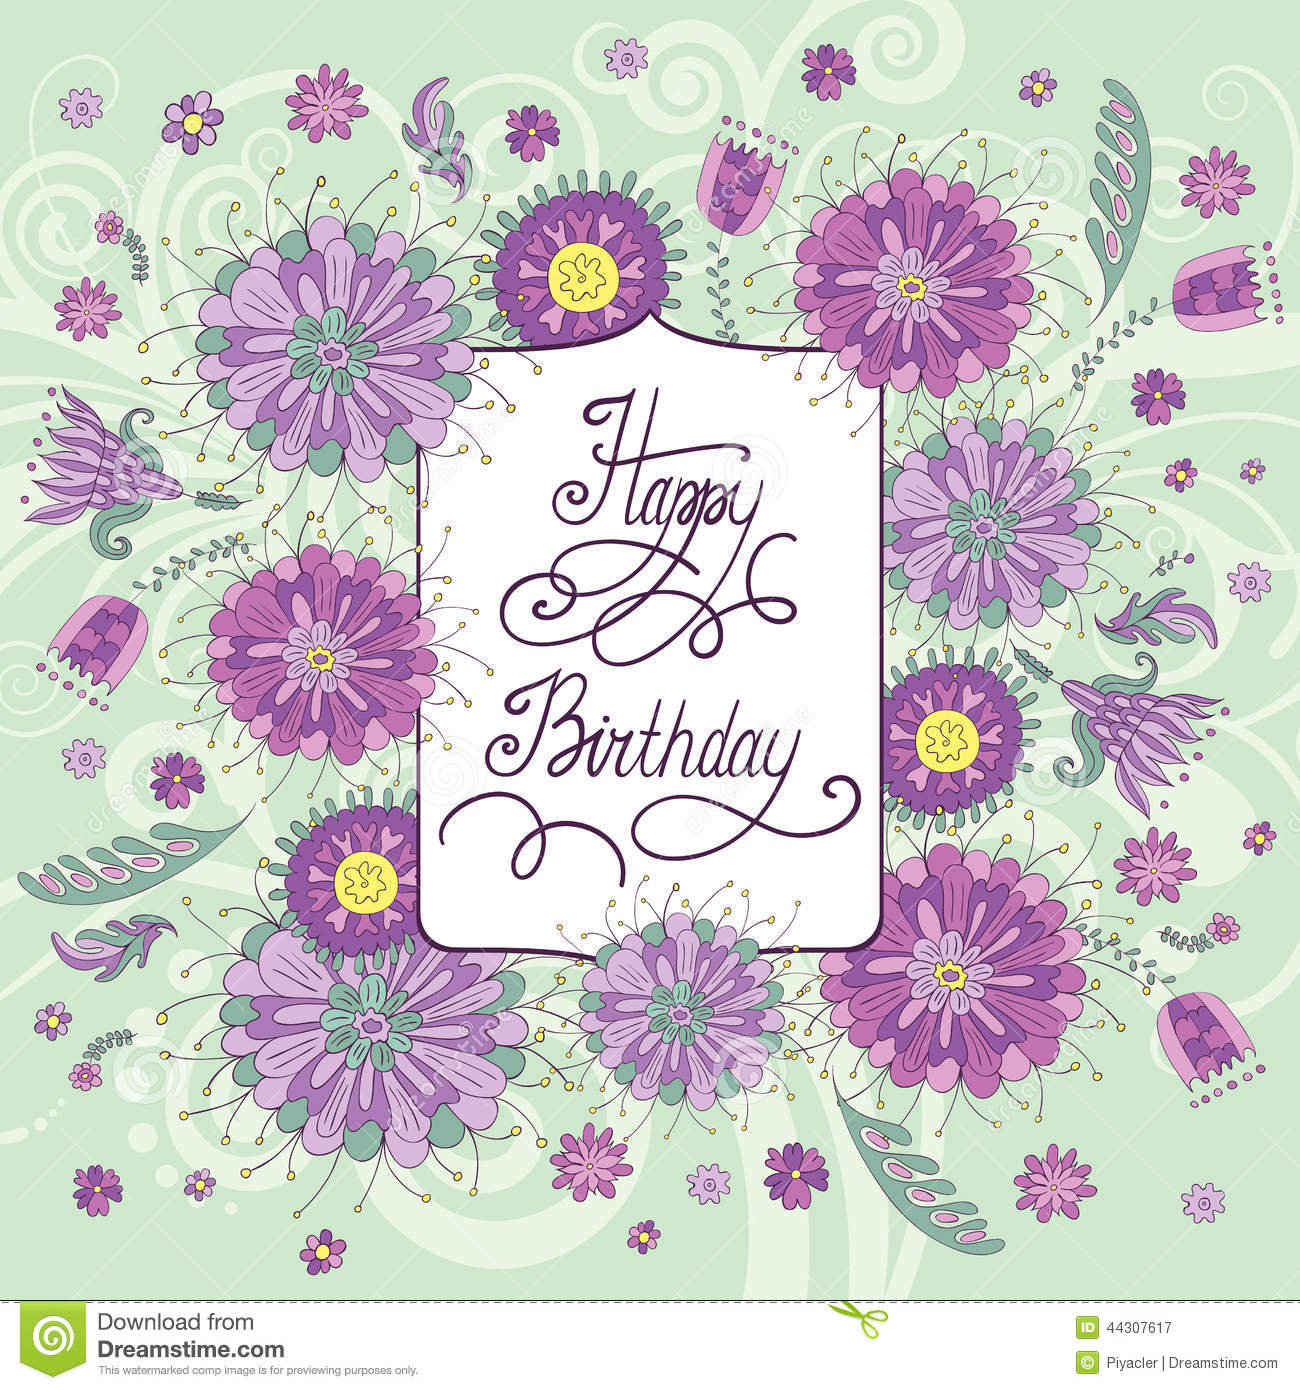 Beautiful Birthday Card With Flowers Vector Image 44307617 – A Beautiful Birthday Card